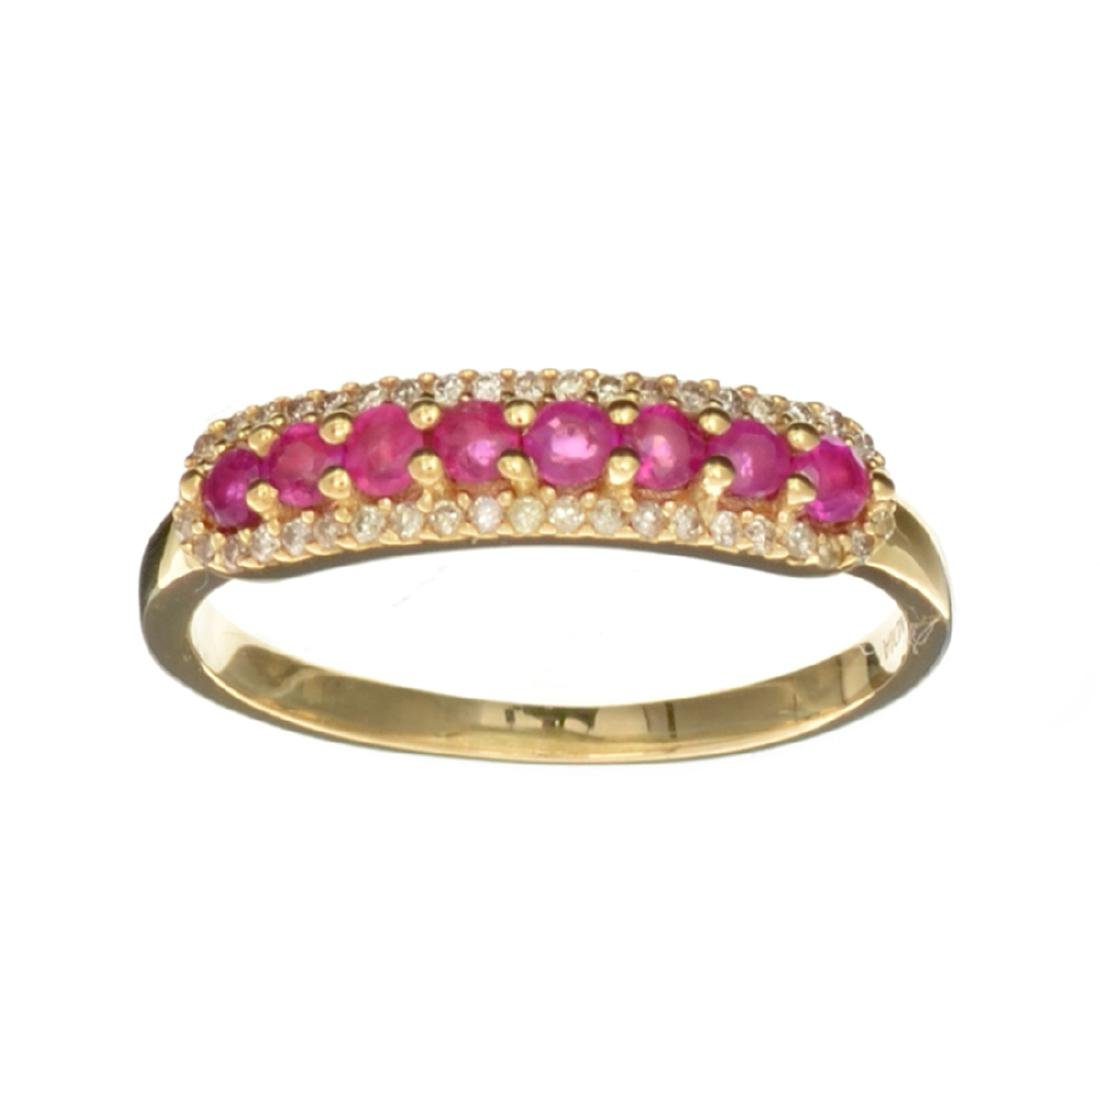 Designer Sebastian 14 KT Gold, Round Cut Ruby and